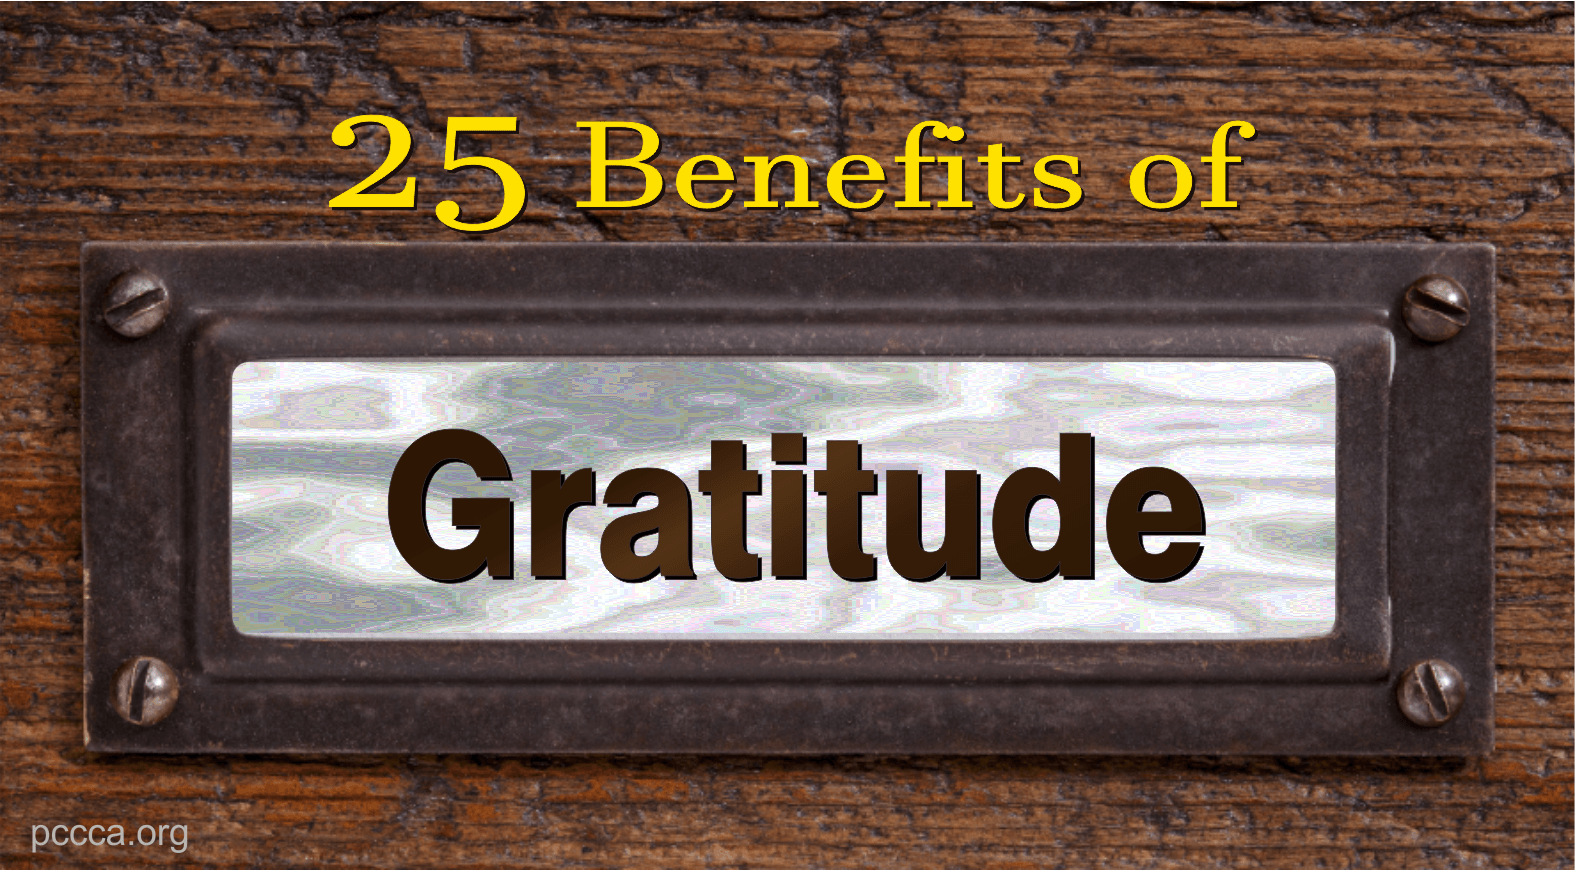 25-benefits-of-gratitude-thanksgiving-image